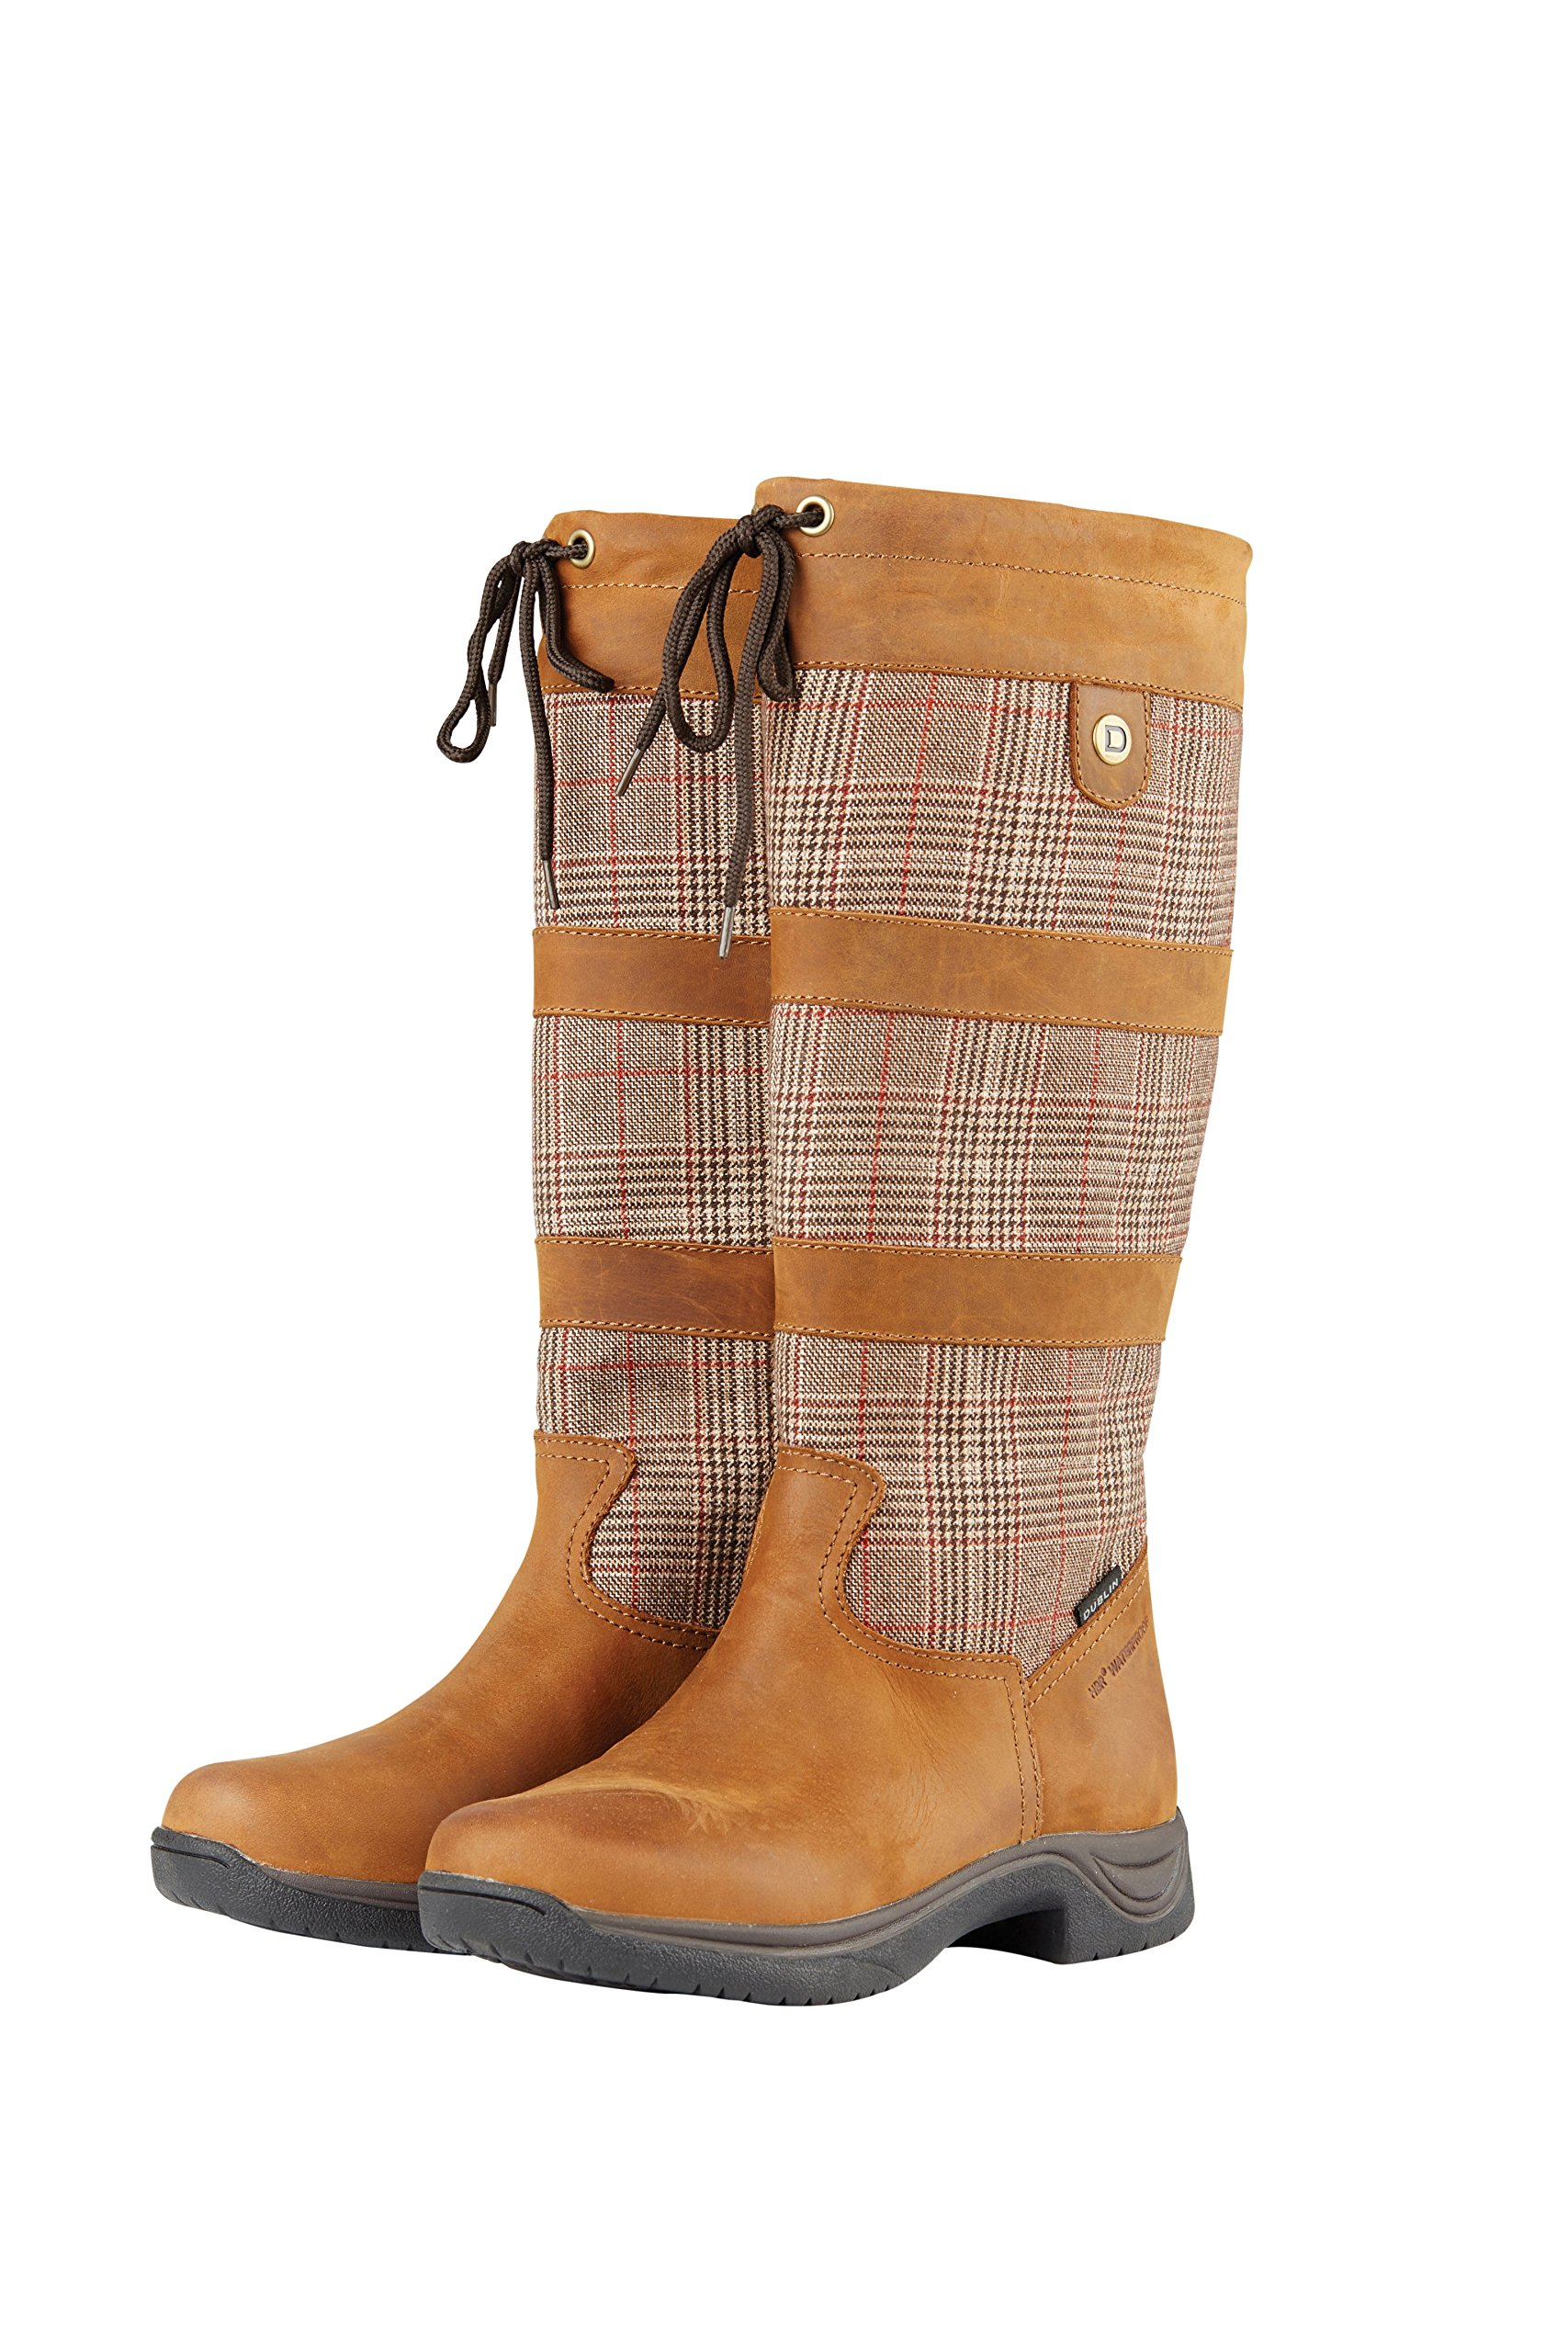 Dublin River Plaid Boots II Brown Ladies 8.5